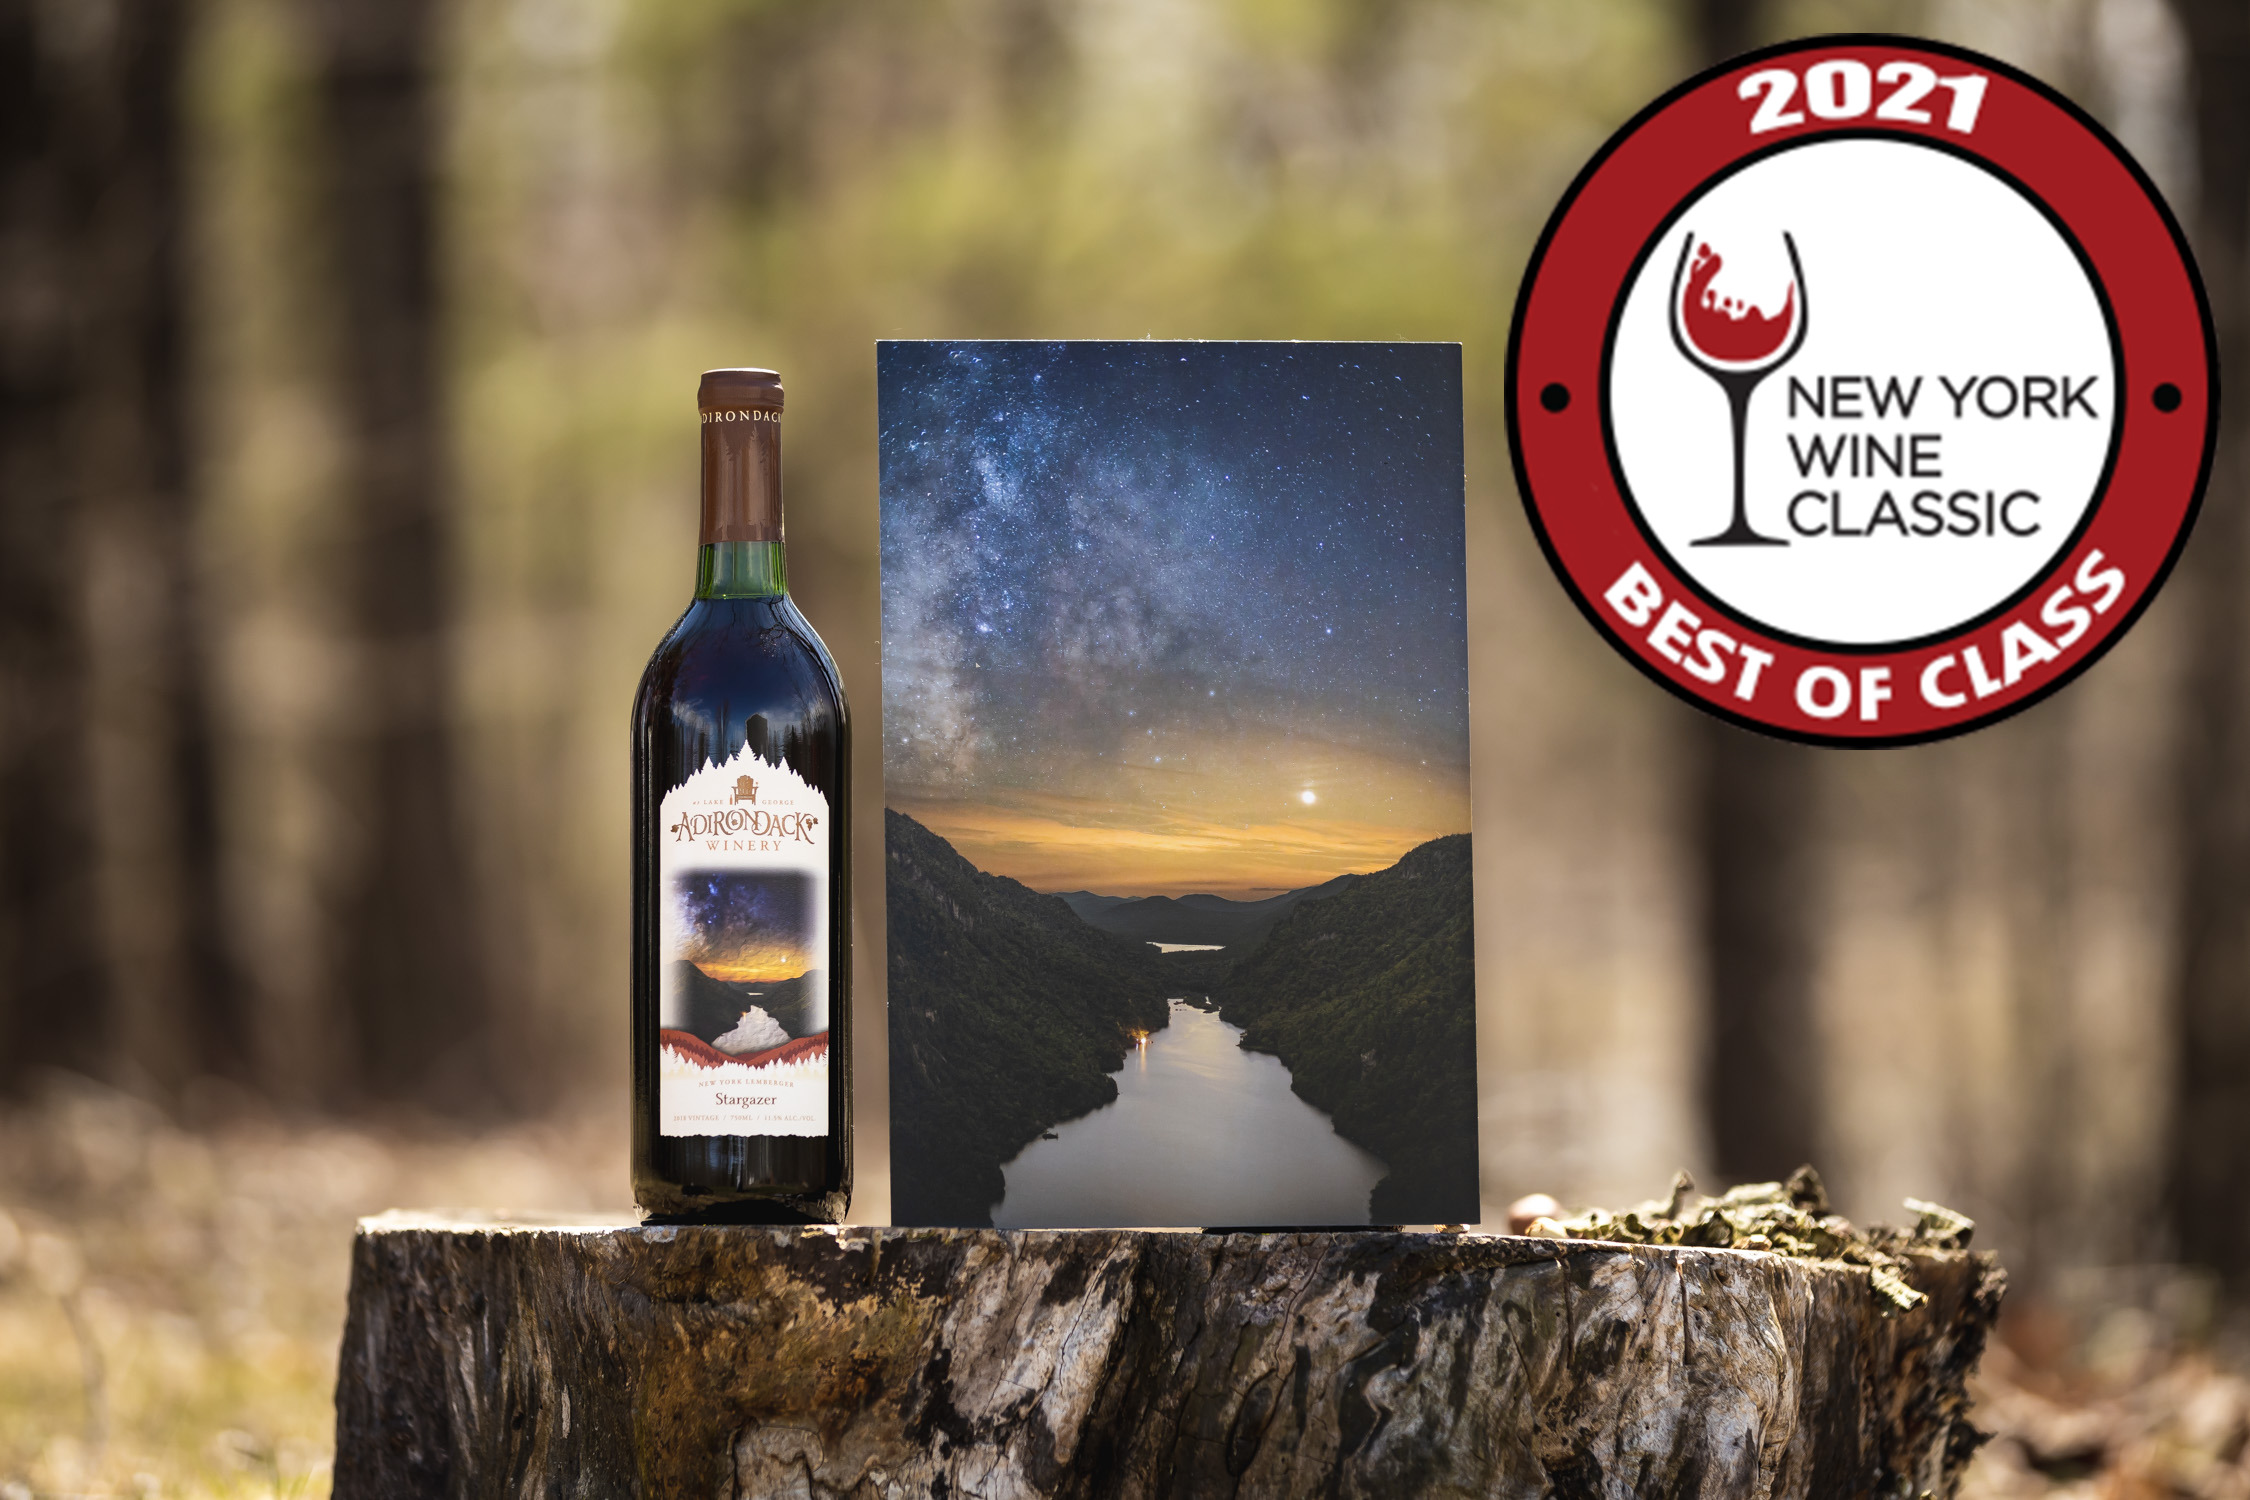 adirondack winery stargazer wine and photo best of new york